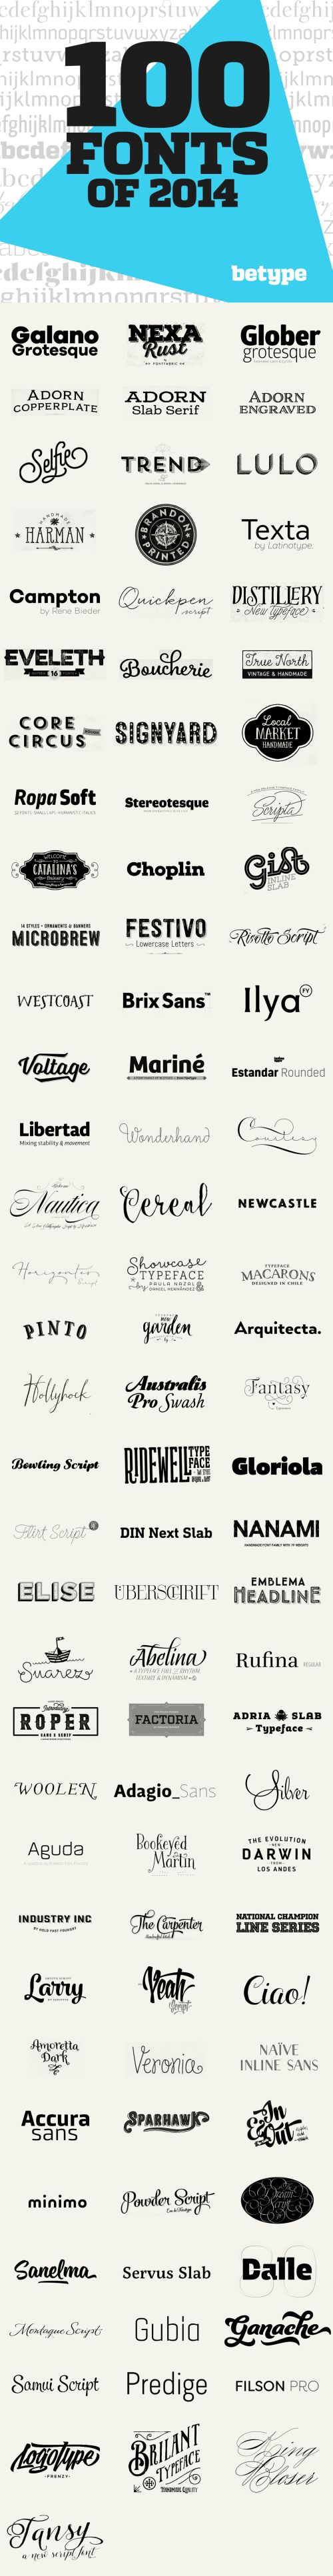 100 Best Fonts of 2014.